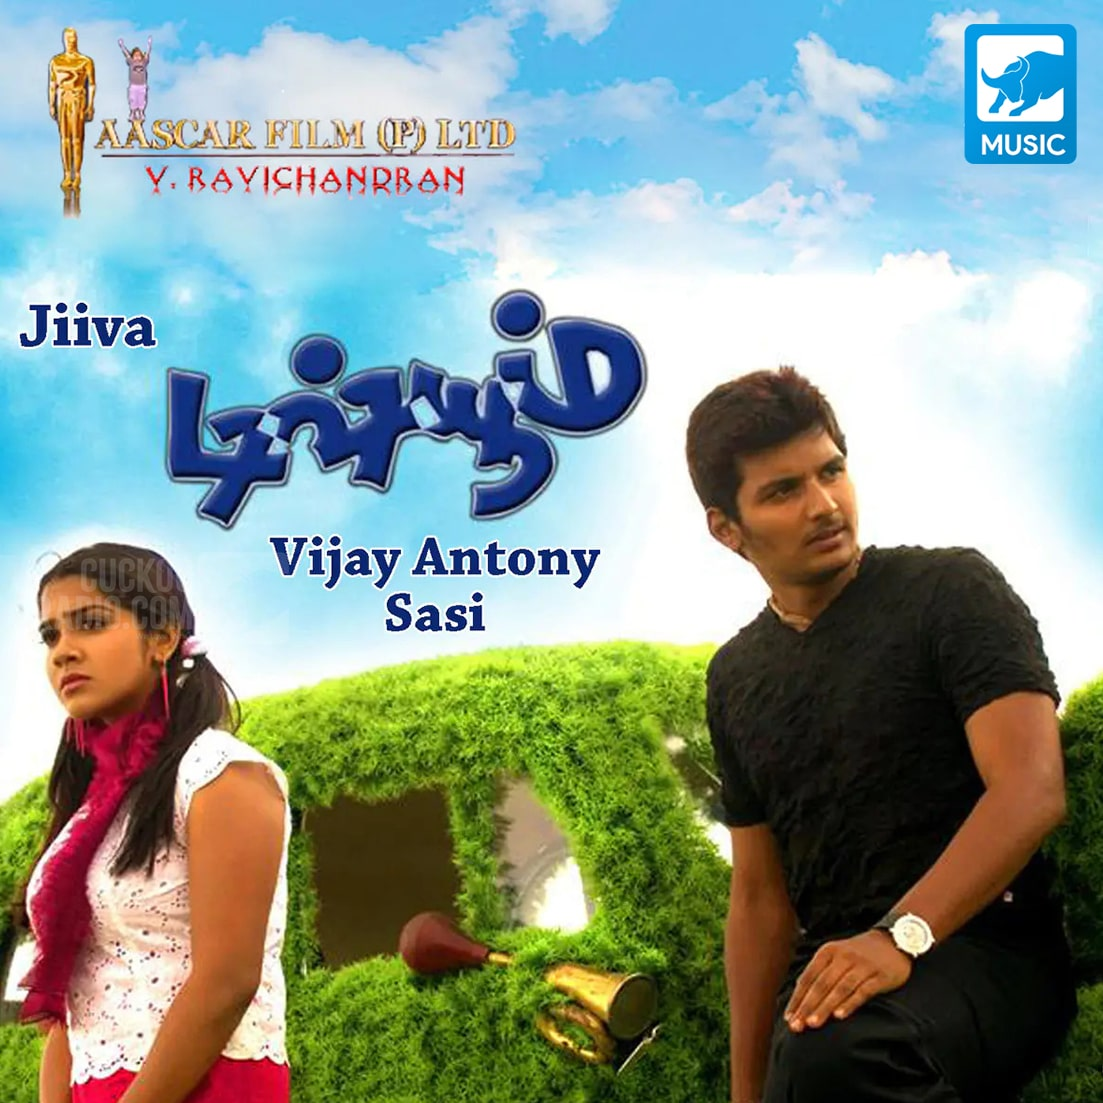 Dishyum Story. Dishyum movie is all about an affair between a stuntman and a student . Risk Bhaskar ( Jeeva) who is a stuntman in films